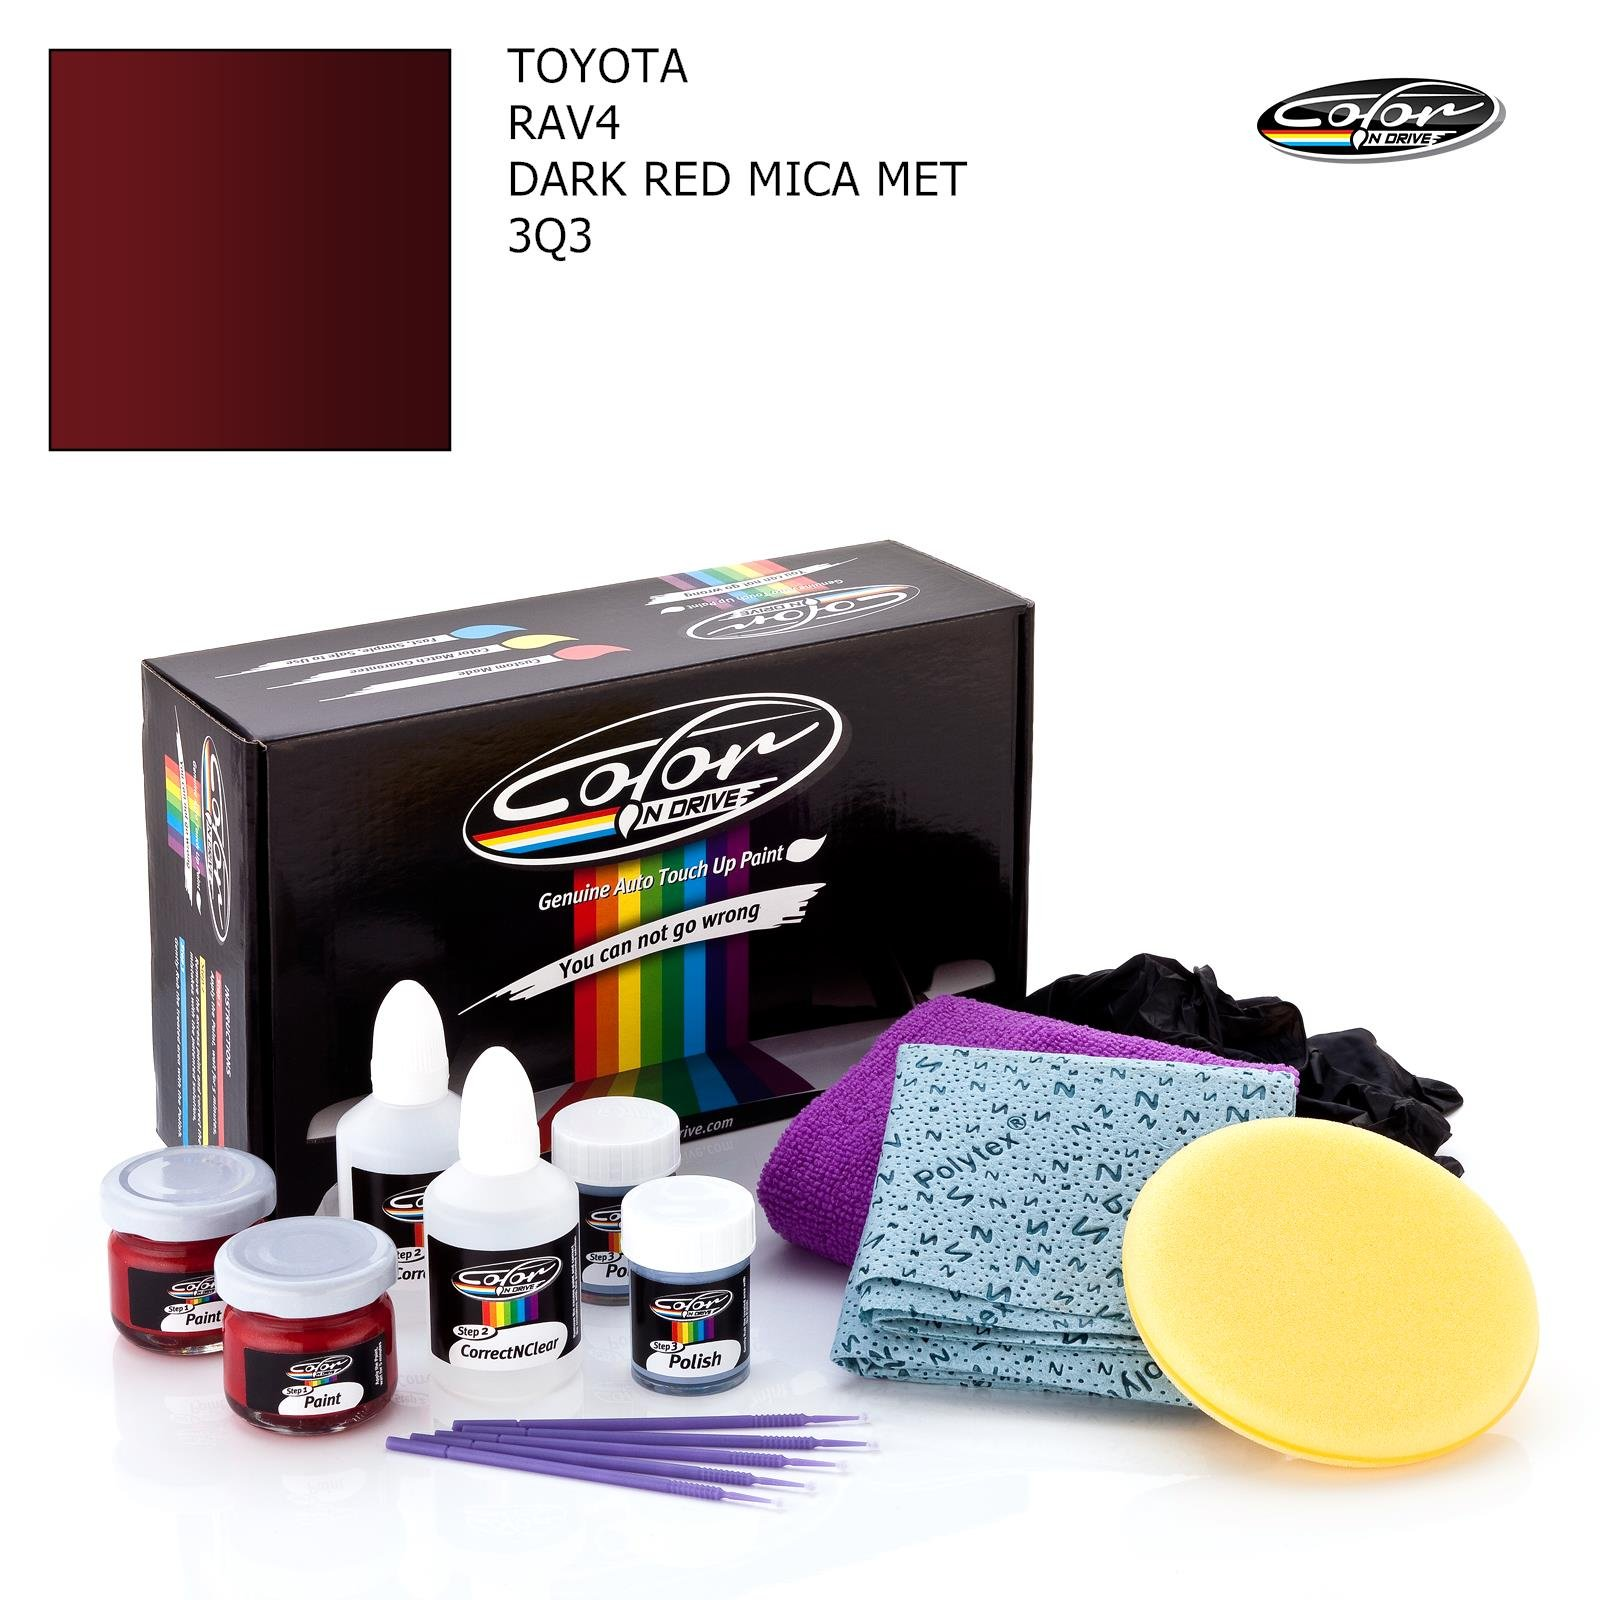 Toyota RAV4 / Dark RED MICA MET - 3Q3 / Color N Drive Touch UP Paint System for Paint Chips and Scratches/PRO Pack